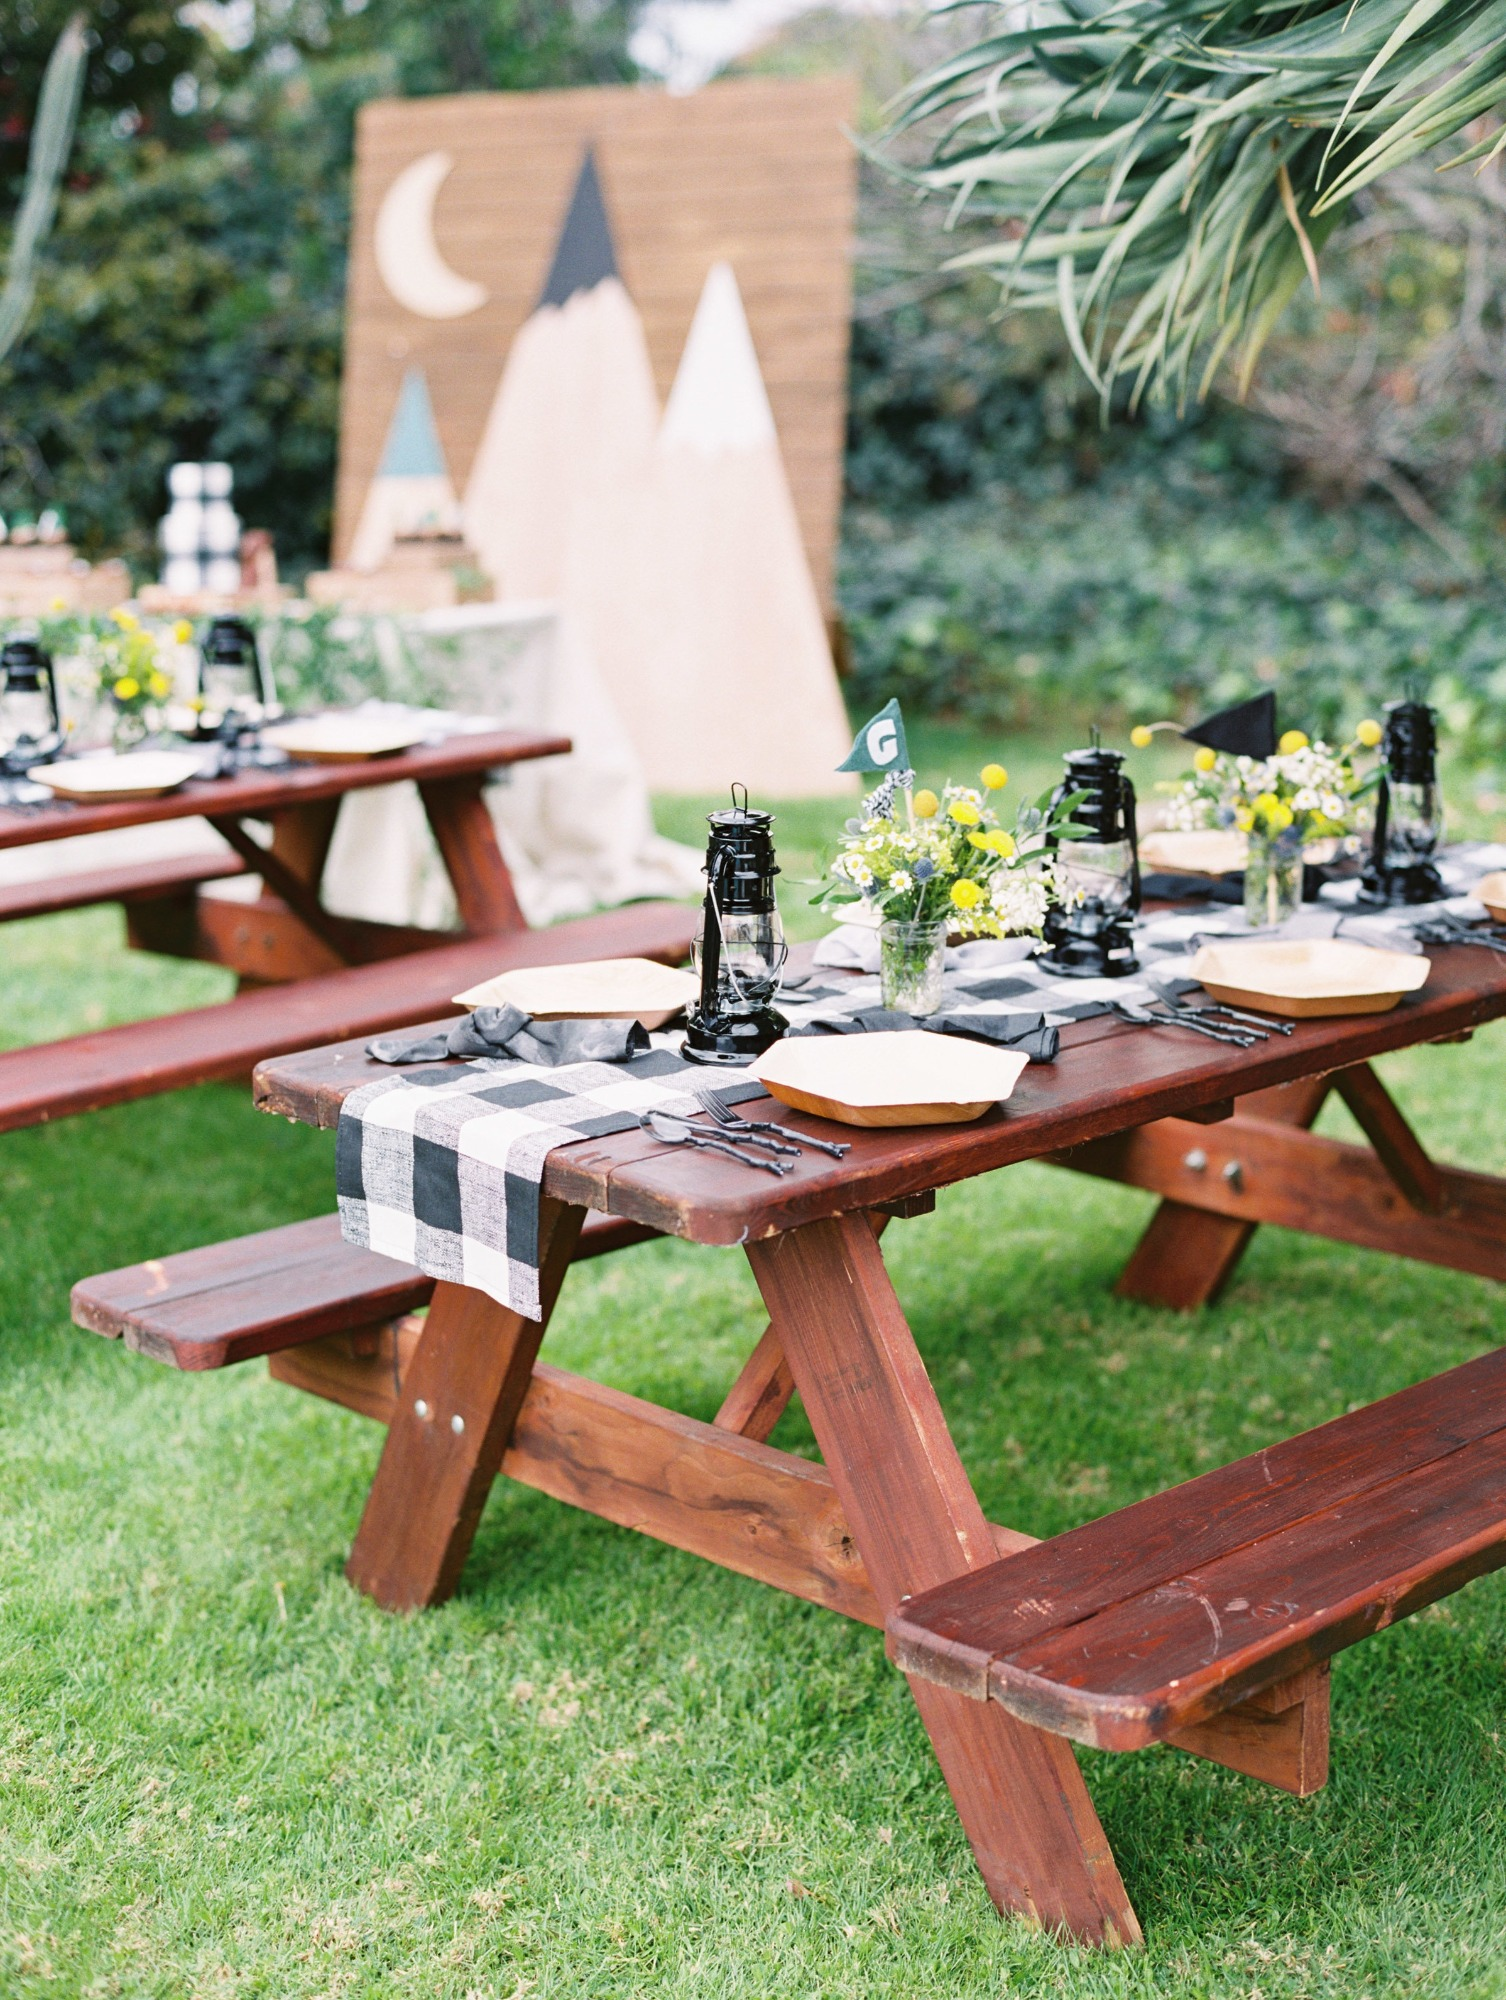 Picnic Benches From Classic Camping Birthday Party Styled By Deets U0026 Things  | Black Twine